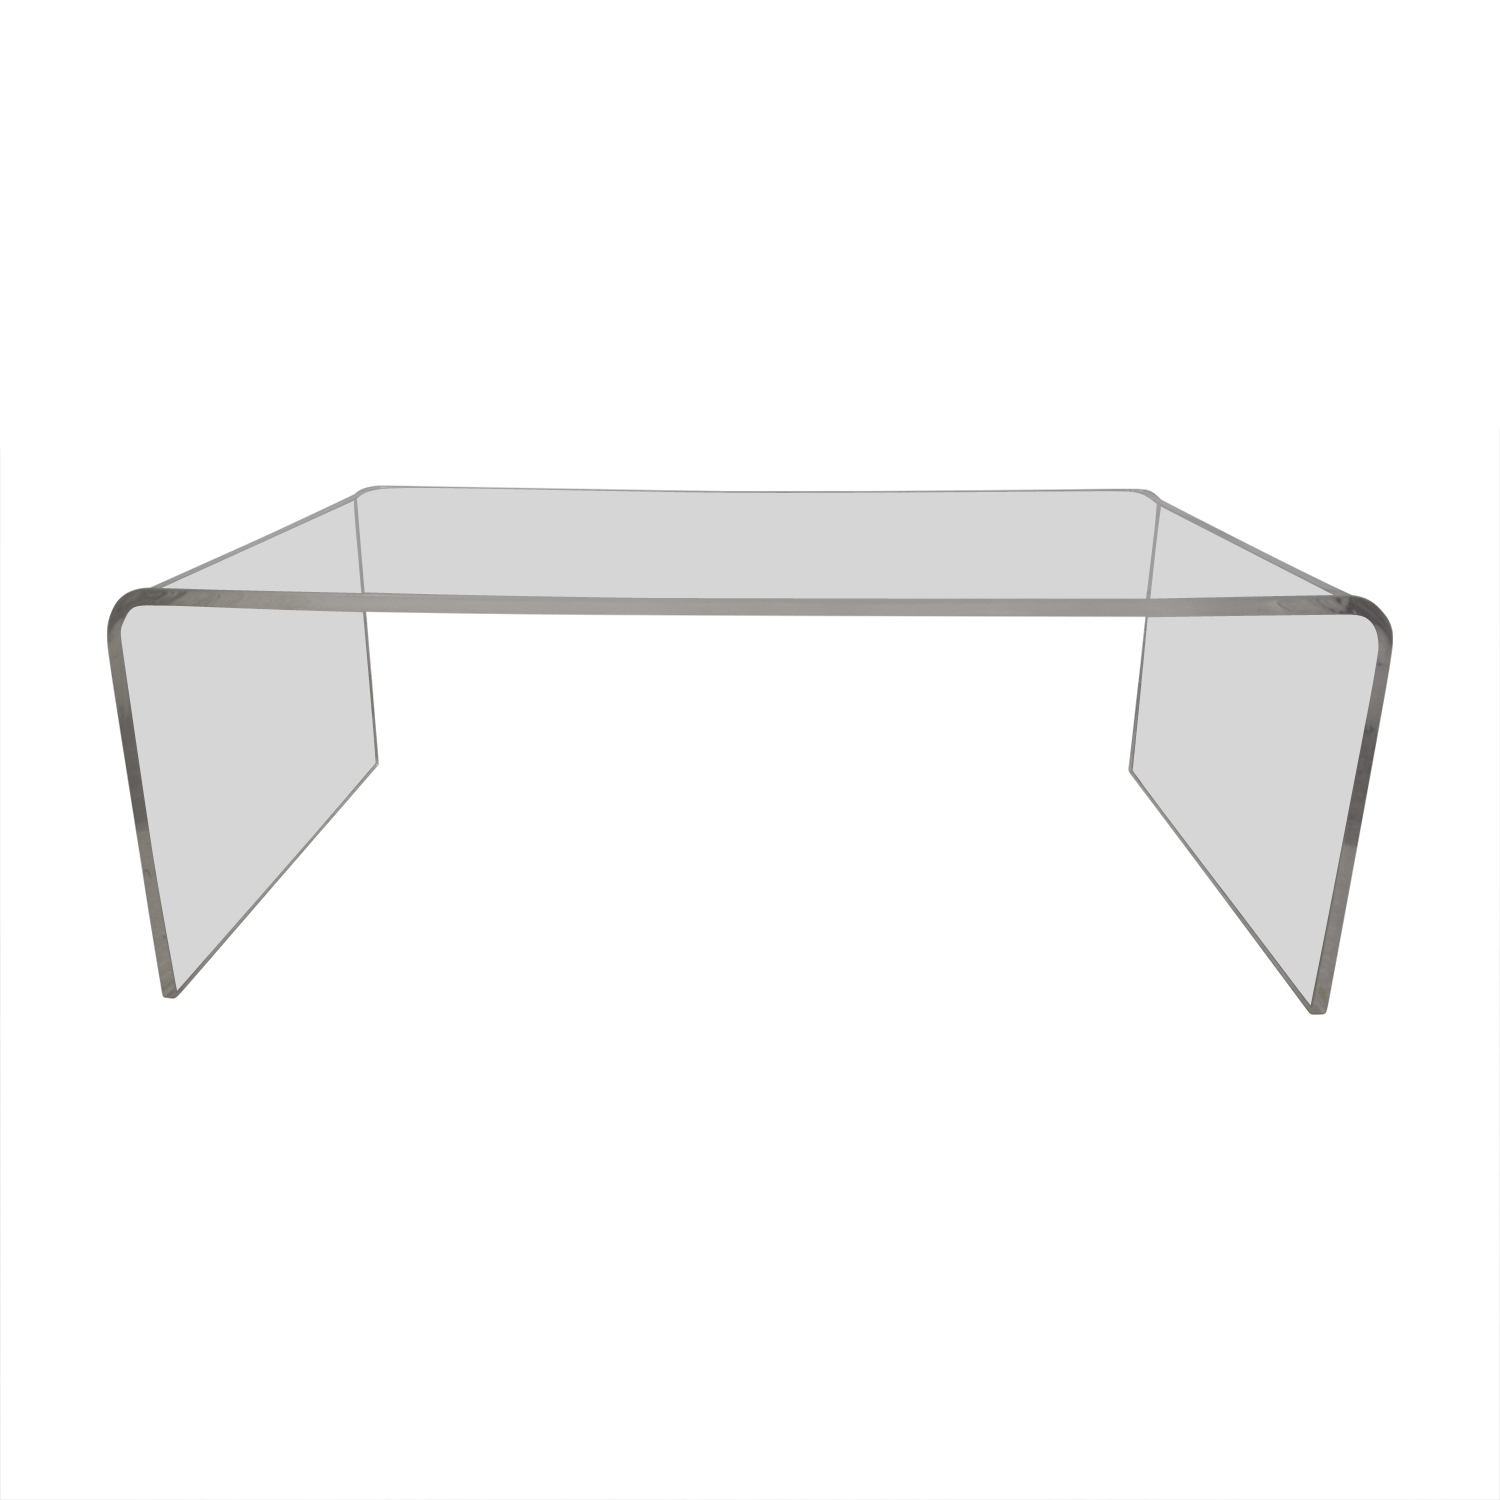 [%Widely Used Peekaboo Acrylic Coffee Tables With 61% Off – Cb2 Cb2 Peekaboo Acrylic Ghost Tall Coffee Table / Tables|61% Off – Cb2 Cb2 Peekaboo Acrylic Ghost Tall Coffee Table / Tables Pertaining To Trendy Peekaboo Acrylic Coffee Tables%] (View 4 of 20)